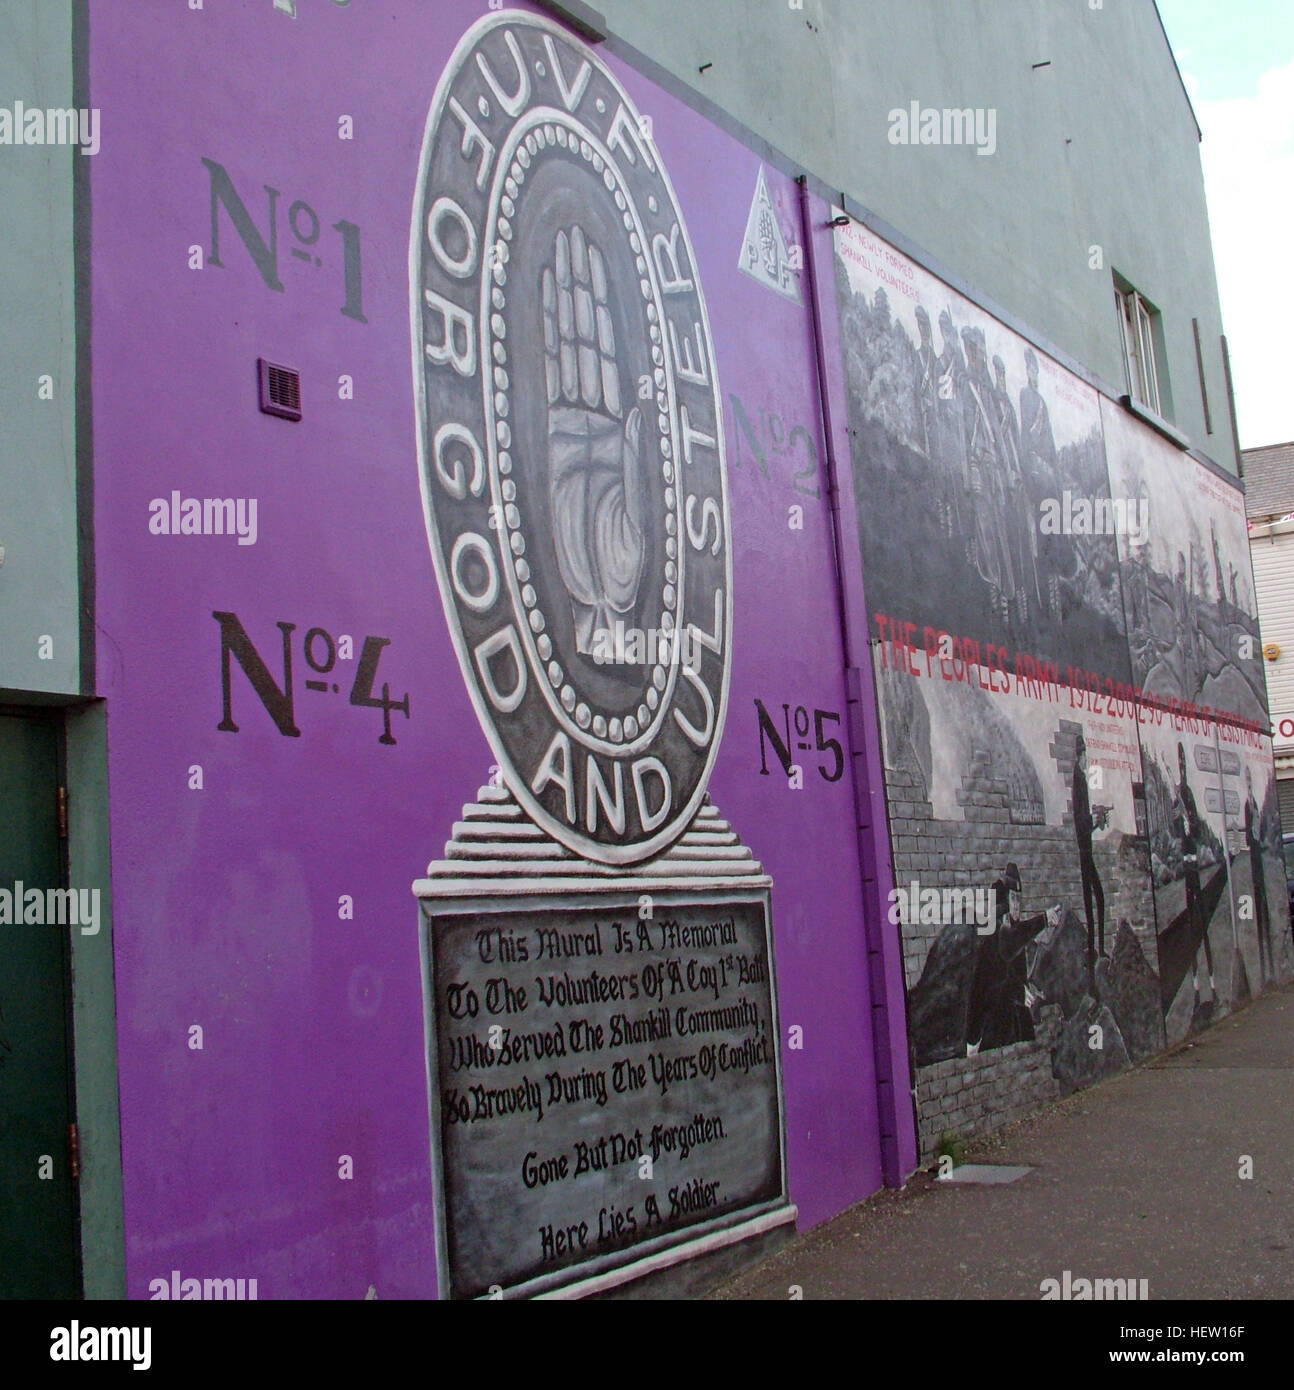 Unionist,British,Shankil,rd,painting,art,artist,martyr,fighter,para,paramilitary,soldier,wall,gable,end,gable end,community,protestant,Shankill Road Mural,West,West Belfast,NI,Northern Ireland,GoTonySmith,@HotpixUK,Tony,Smith,UK,GB,Great,Britain,United,Kingdom,Irish,British,Ireland,problem,with,problem with,issue with,NI,Northern,Northern Ireland,Belfast,City,Centre,Art,Artists,the,troubles,The Troubles,Good Friday Agreement,Peace,honour,painting,wall,walls,tribute,unionism,Fight,Justice,West,Beal,feirste,martyrs,social,tour,tourism,tourists,urban,six,counties,6,backdrop,county,Antrim,DUP,democratic Unionist,red hand,of Ulster,Red Hand Of Ulster,Shankill,Rd,road,Shankill Road,streets of Belfast,Buy Pictures of,Buy Images Of,Images of,Stock Images,Tony Smith,United Kingdom,Great Britain,British Isles